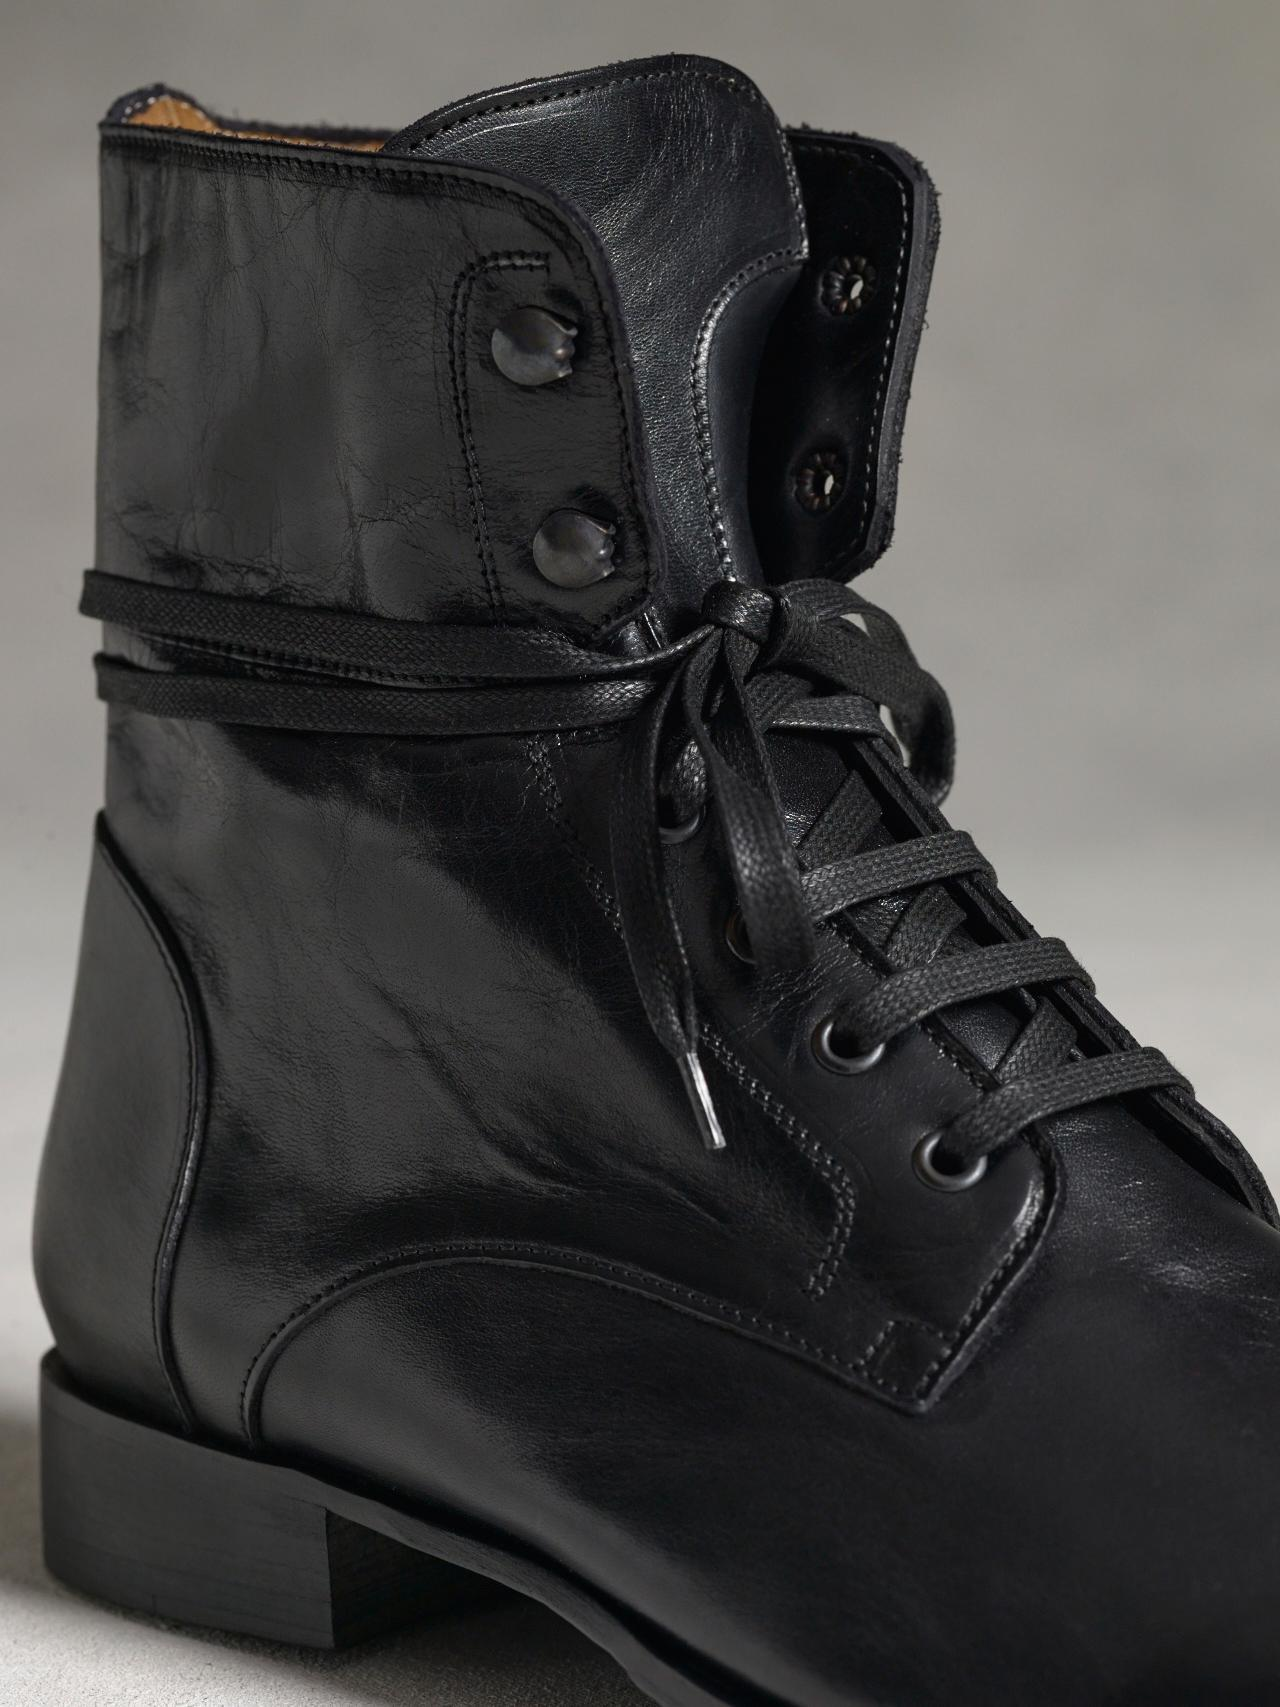 John Varvatos Six O Six Leather Boots In Black For Men Lyst